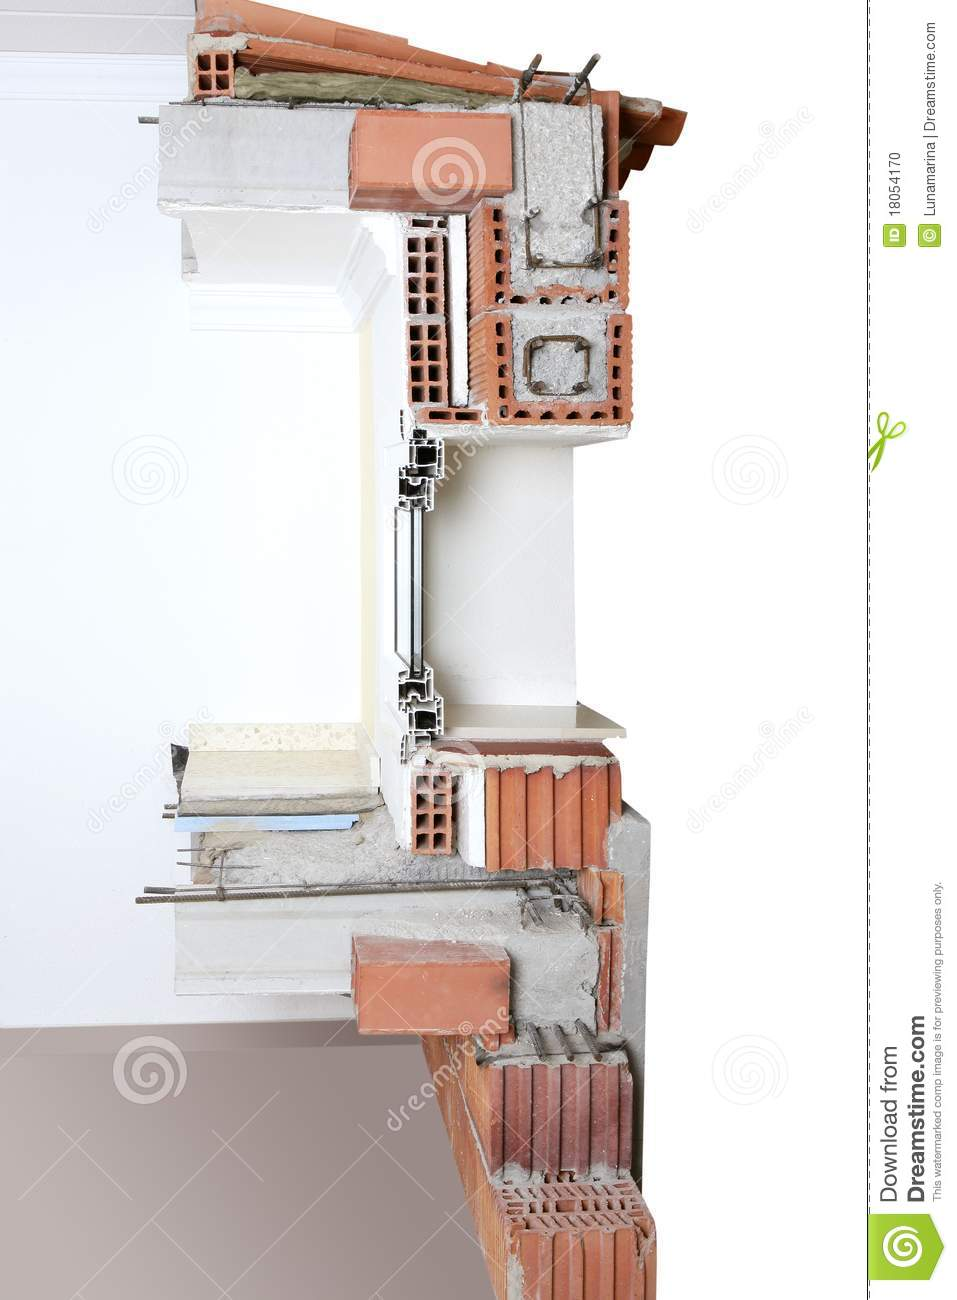 Block And Beam Floor Prices >> Facade Wall Cross Section Real Of Brick Blocks Stock Photo - Image: 18054170